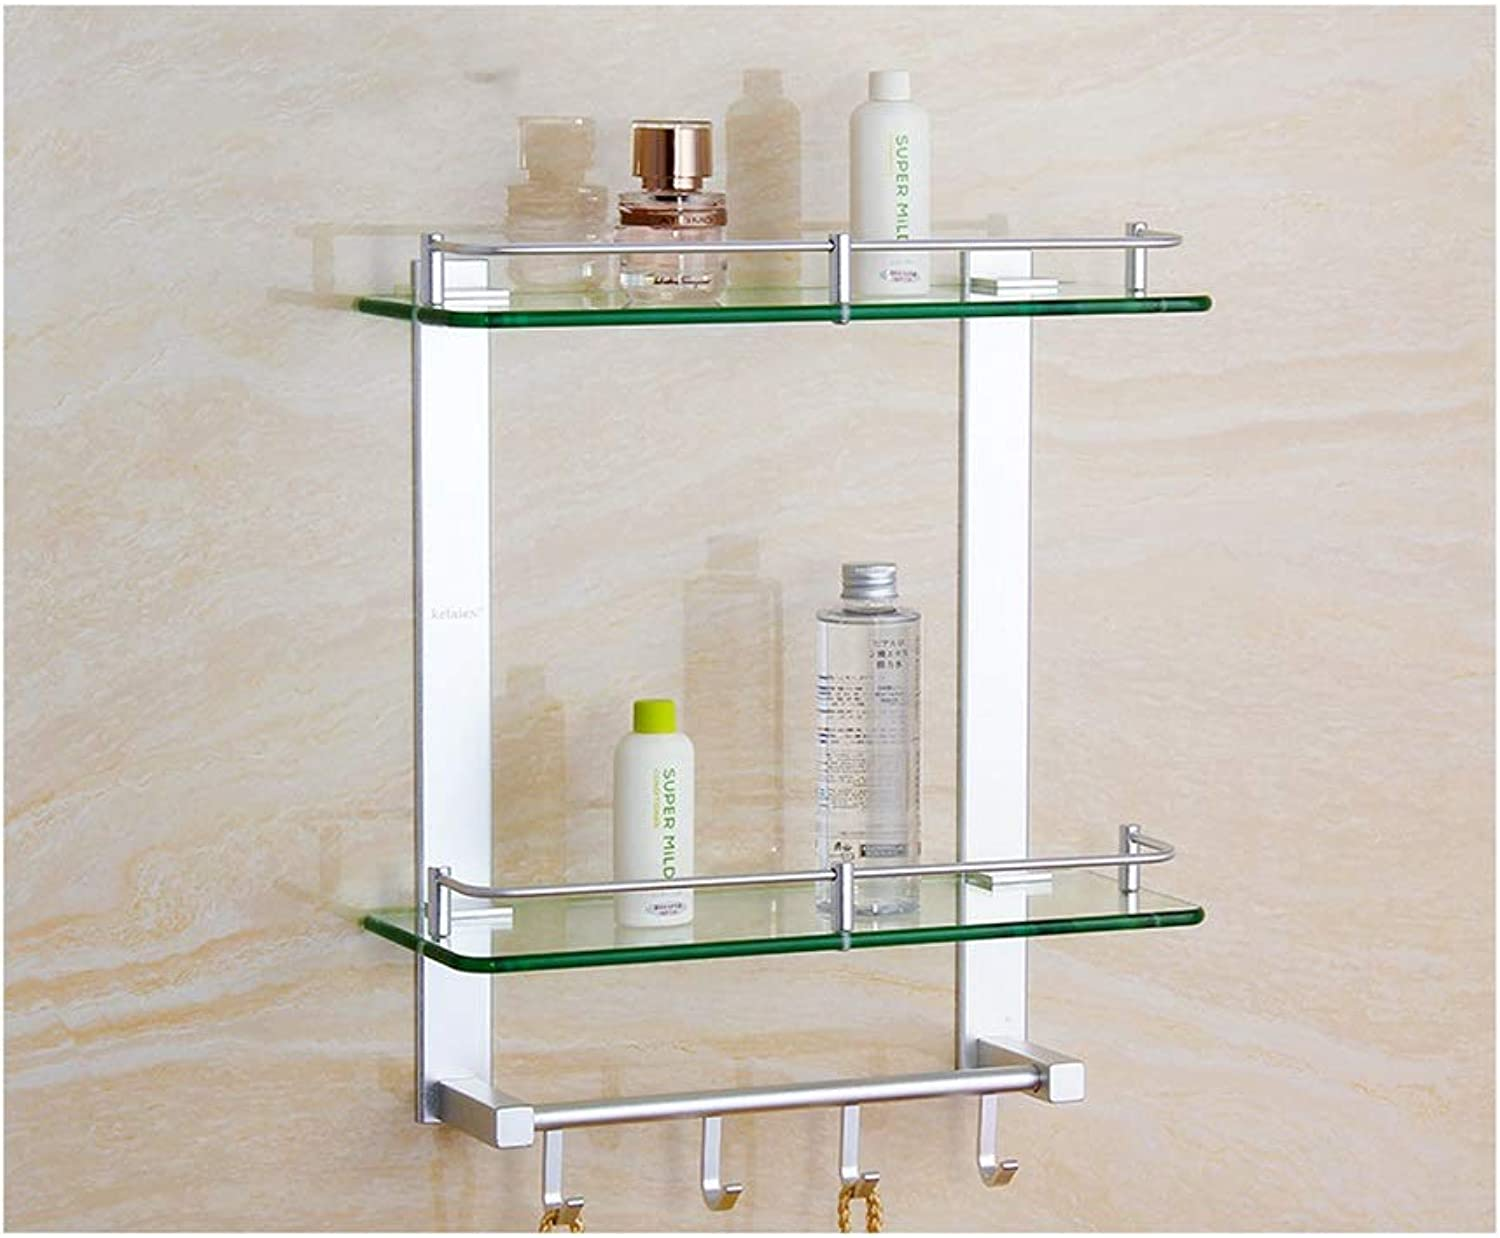 QIQI-JZX Wall Mounted Stainless Steel Bathroom Shelf Rack, Multifunction 2 Tier Glass Shelves with Hooks (Size   50cm)